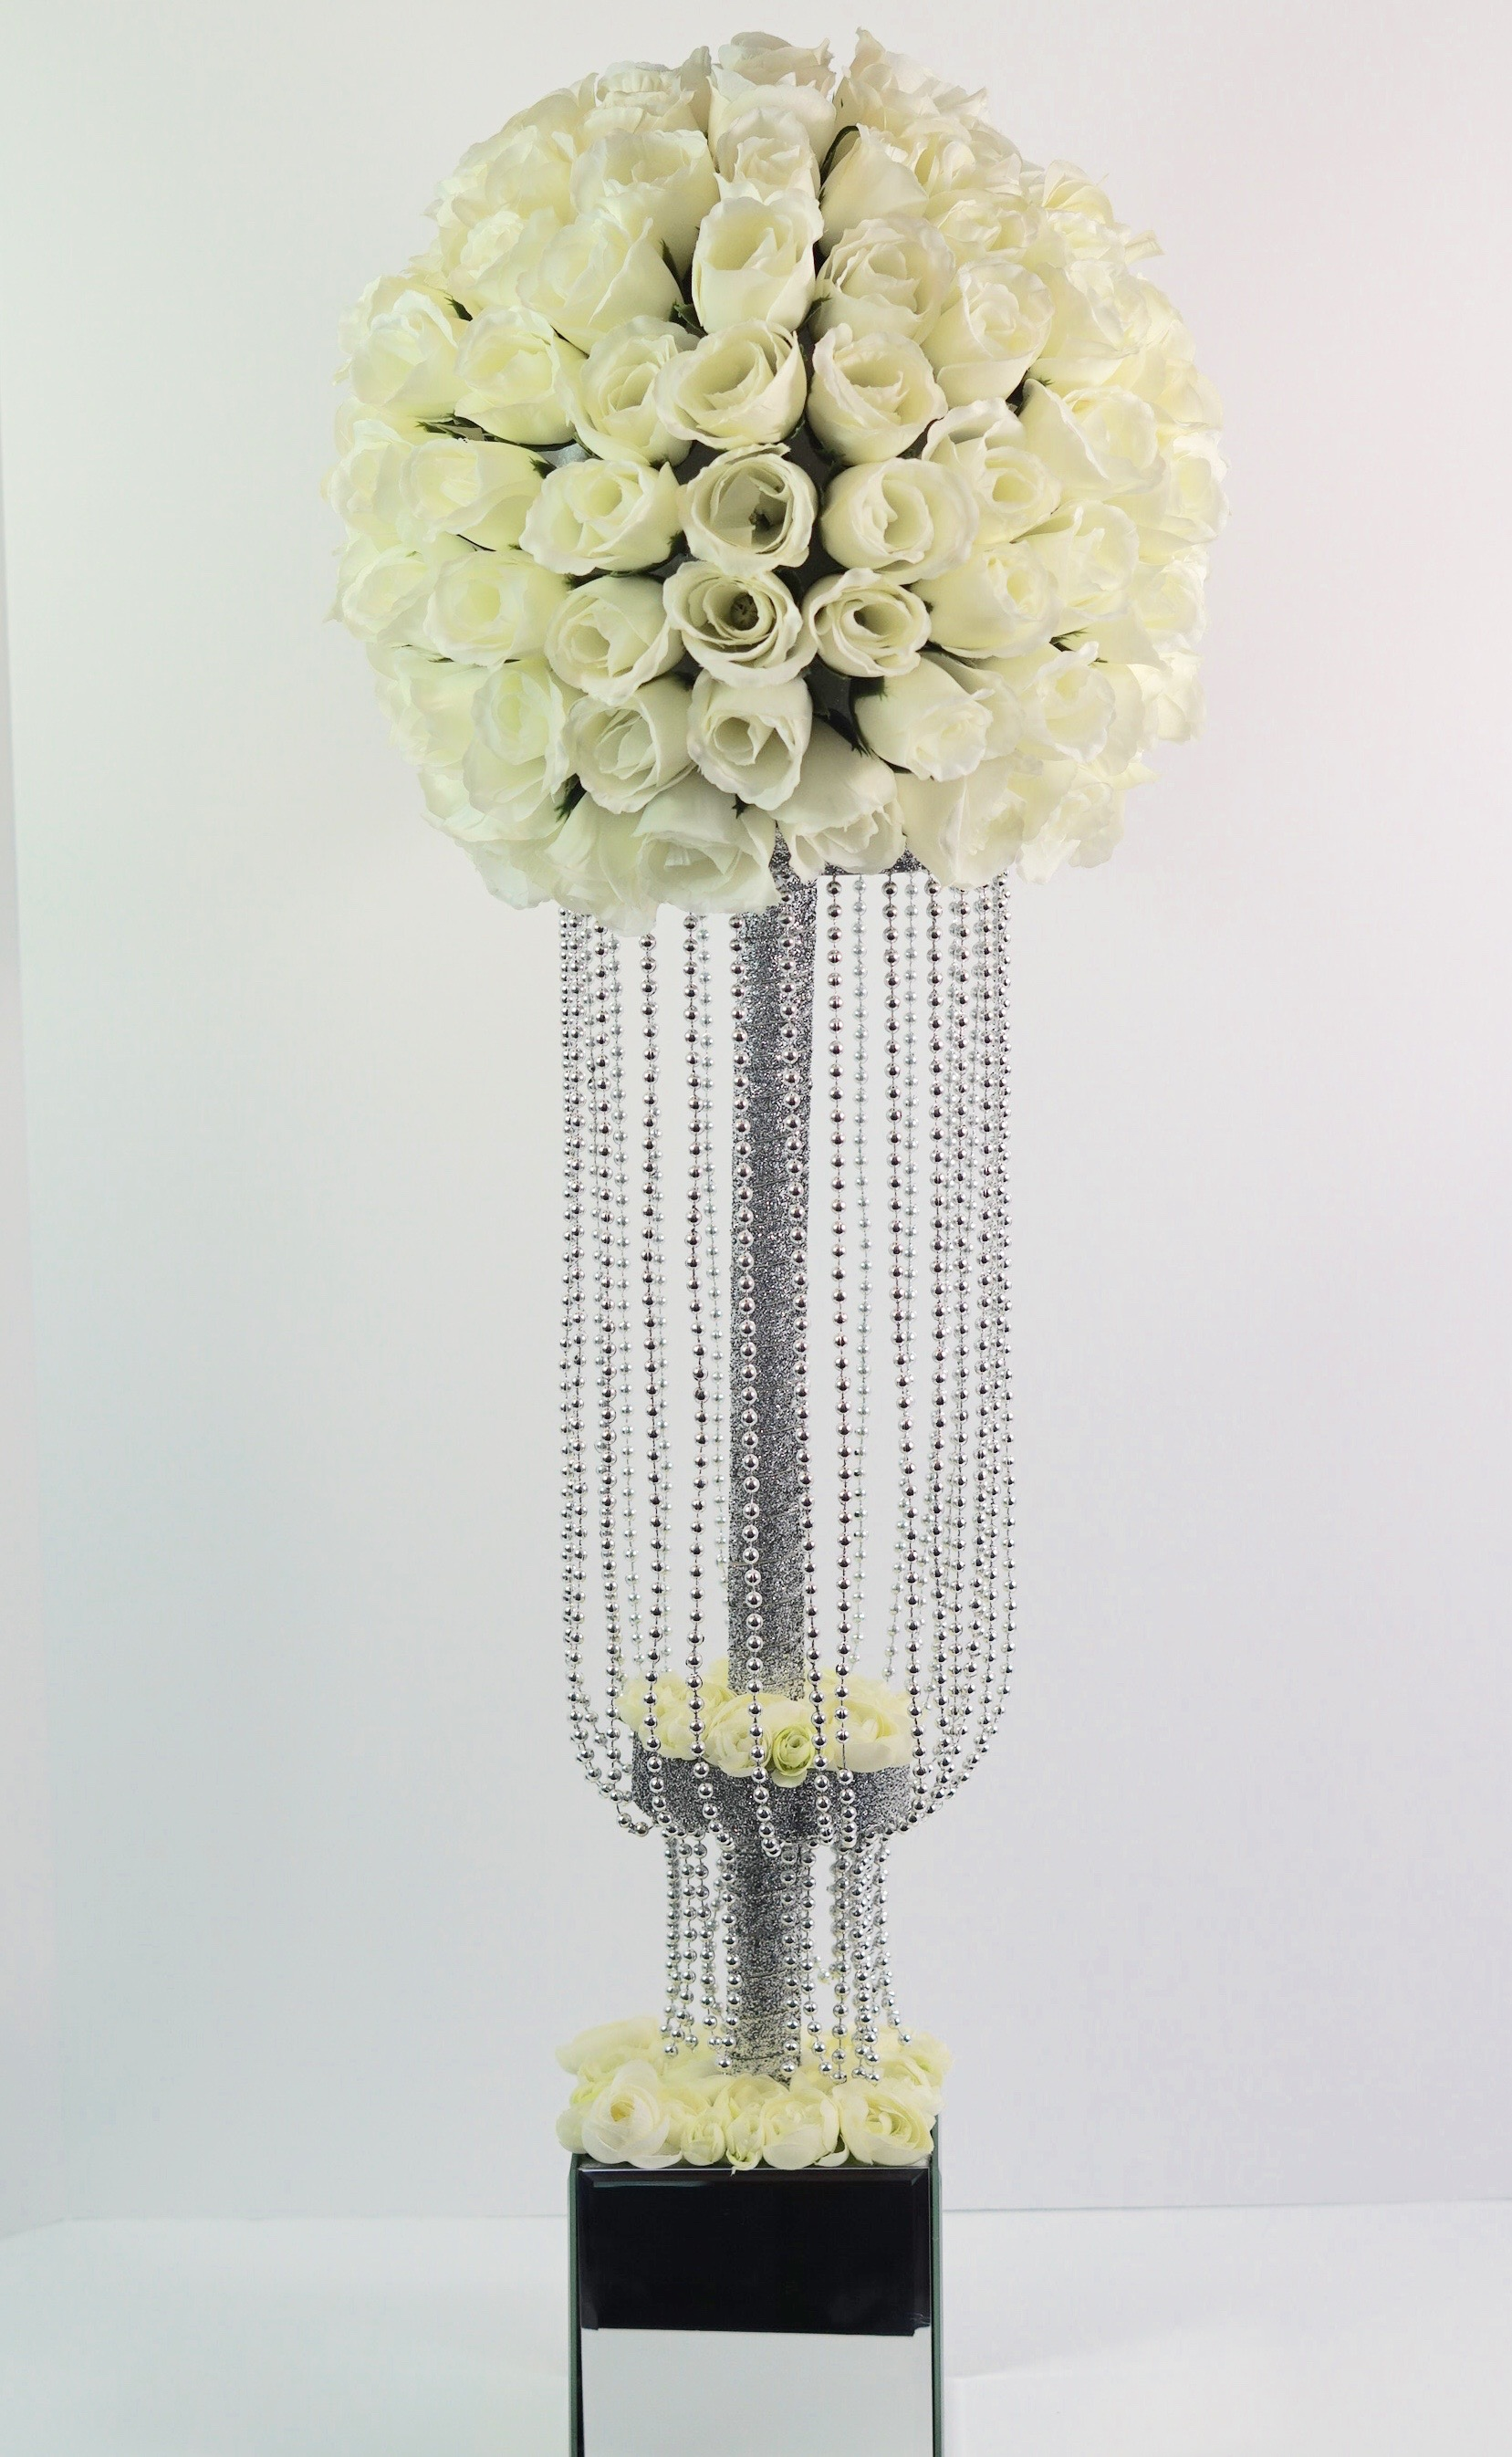 Tall Waterfall Beaded Centerpiece For Your Wedding or Bridal Shower